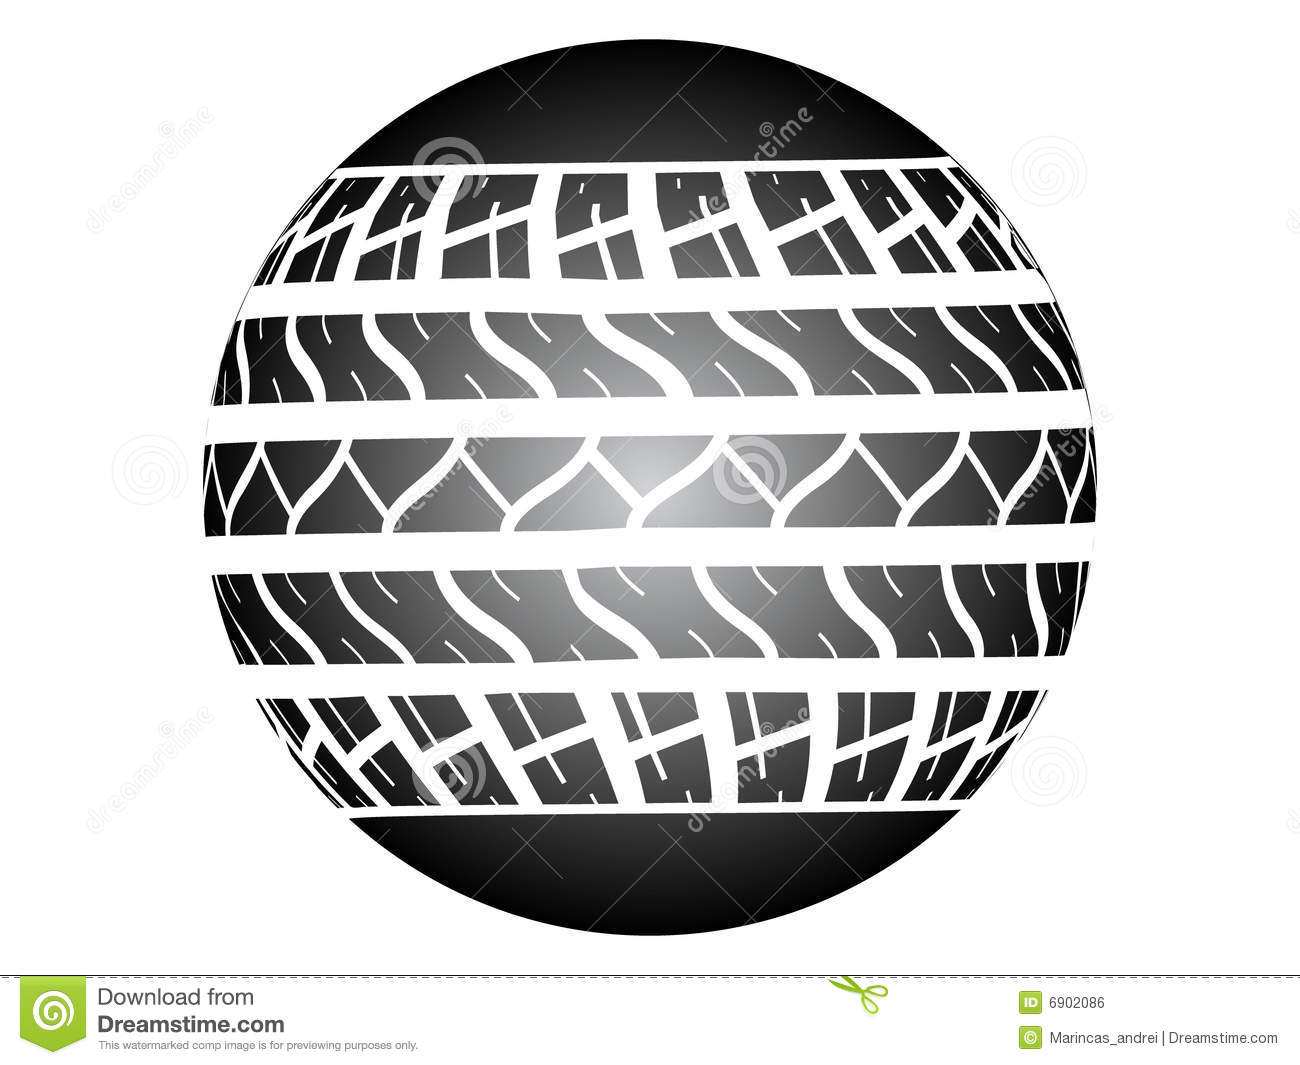 tire track ob ball royalty free stock image image 6902086. Black Bedroom Furniture Sets. Home Design Ideas